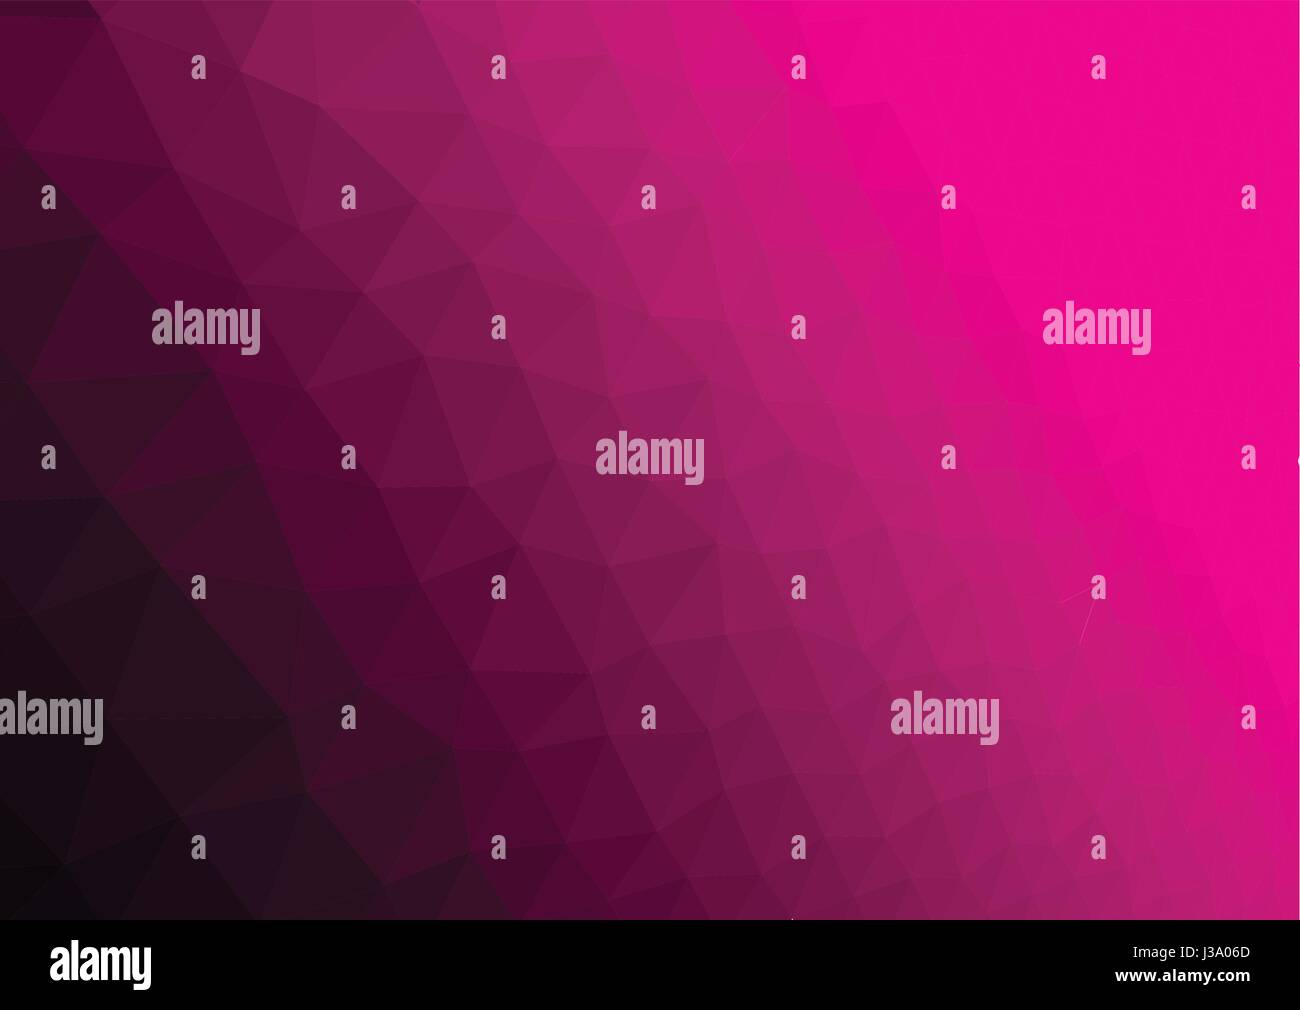 Magenta Color Stock Photos & Magenta Color Stock Images - Alamy